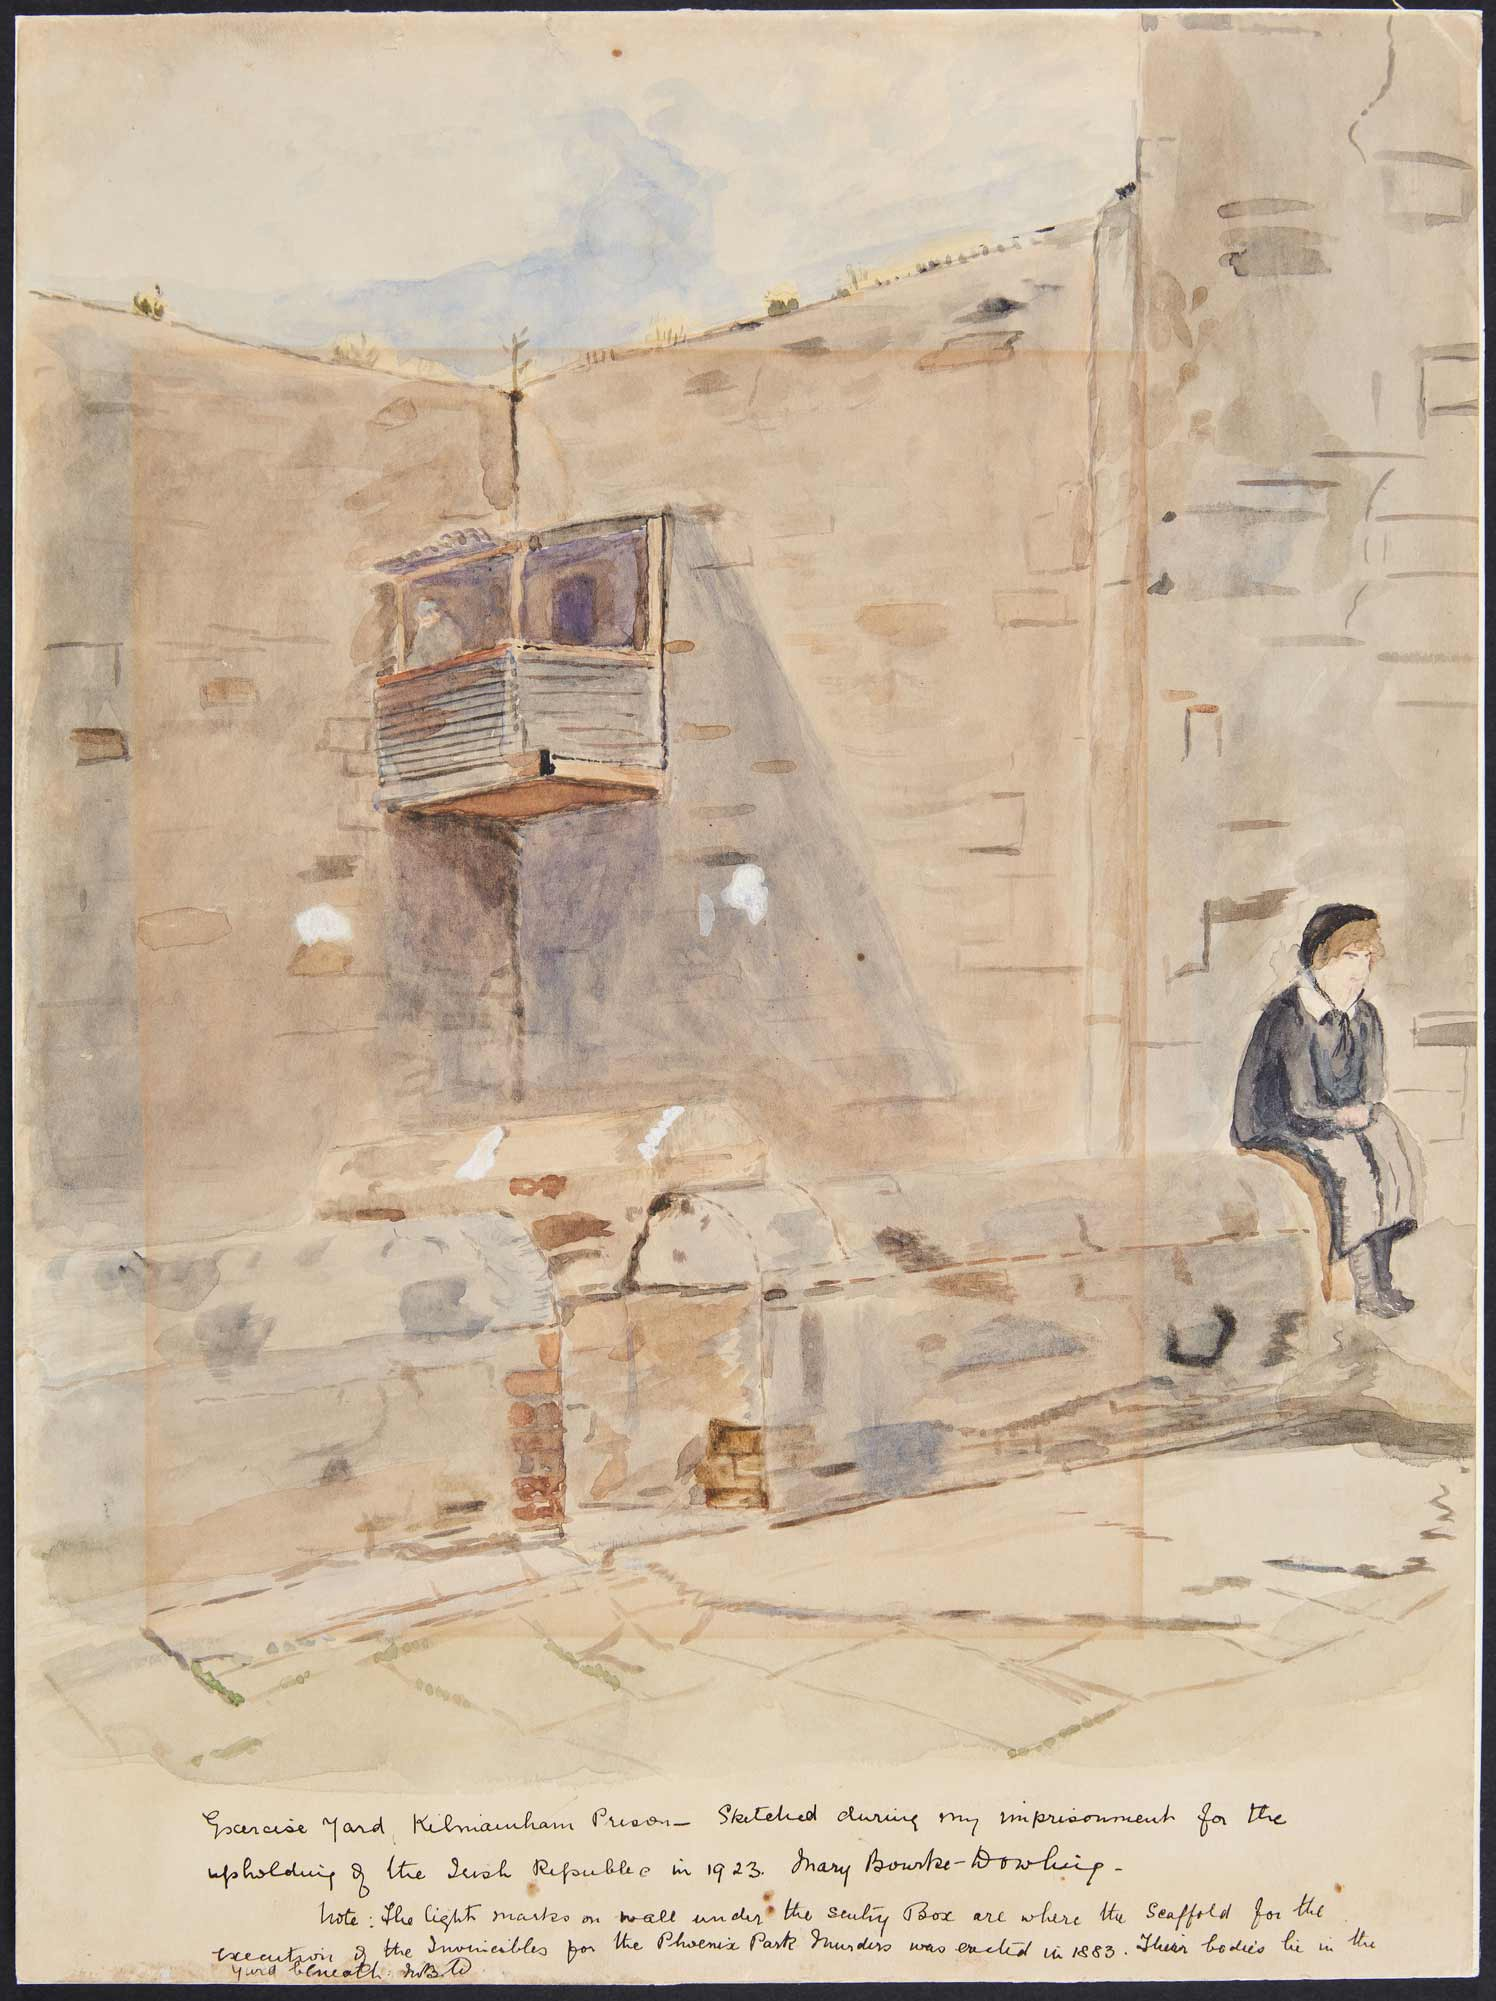 A watercolour of a fellow prisoner in one of the exercise yards around Kilmainham Gaol, painted by Mary Bourke-Dowling in 1923